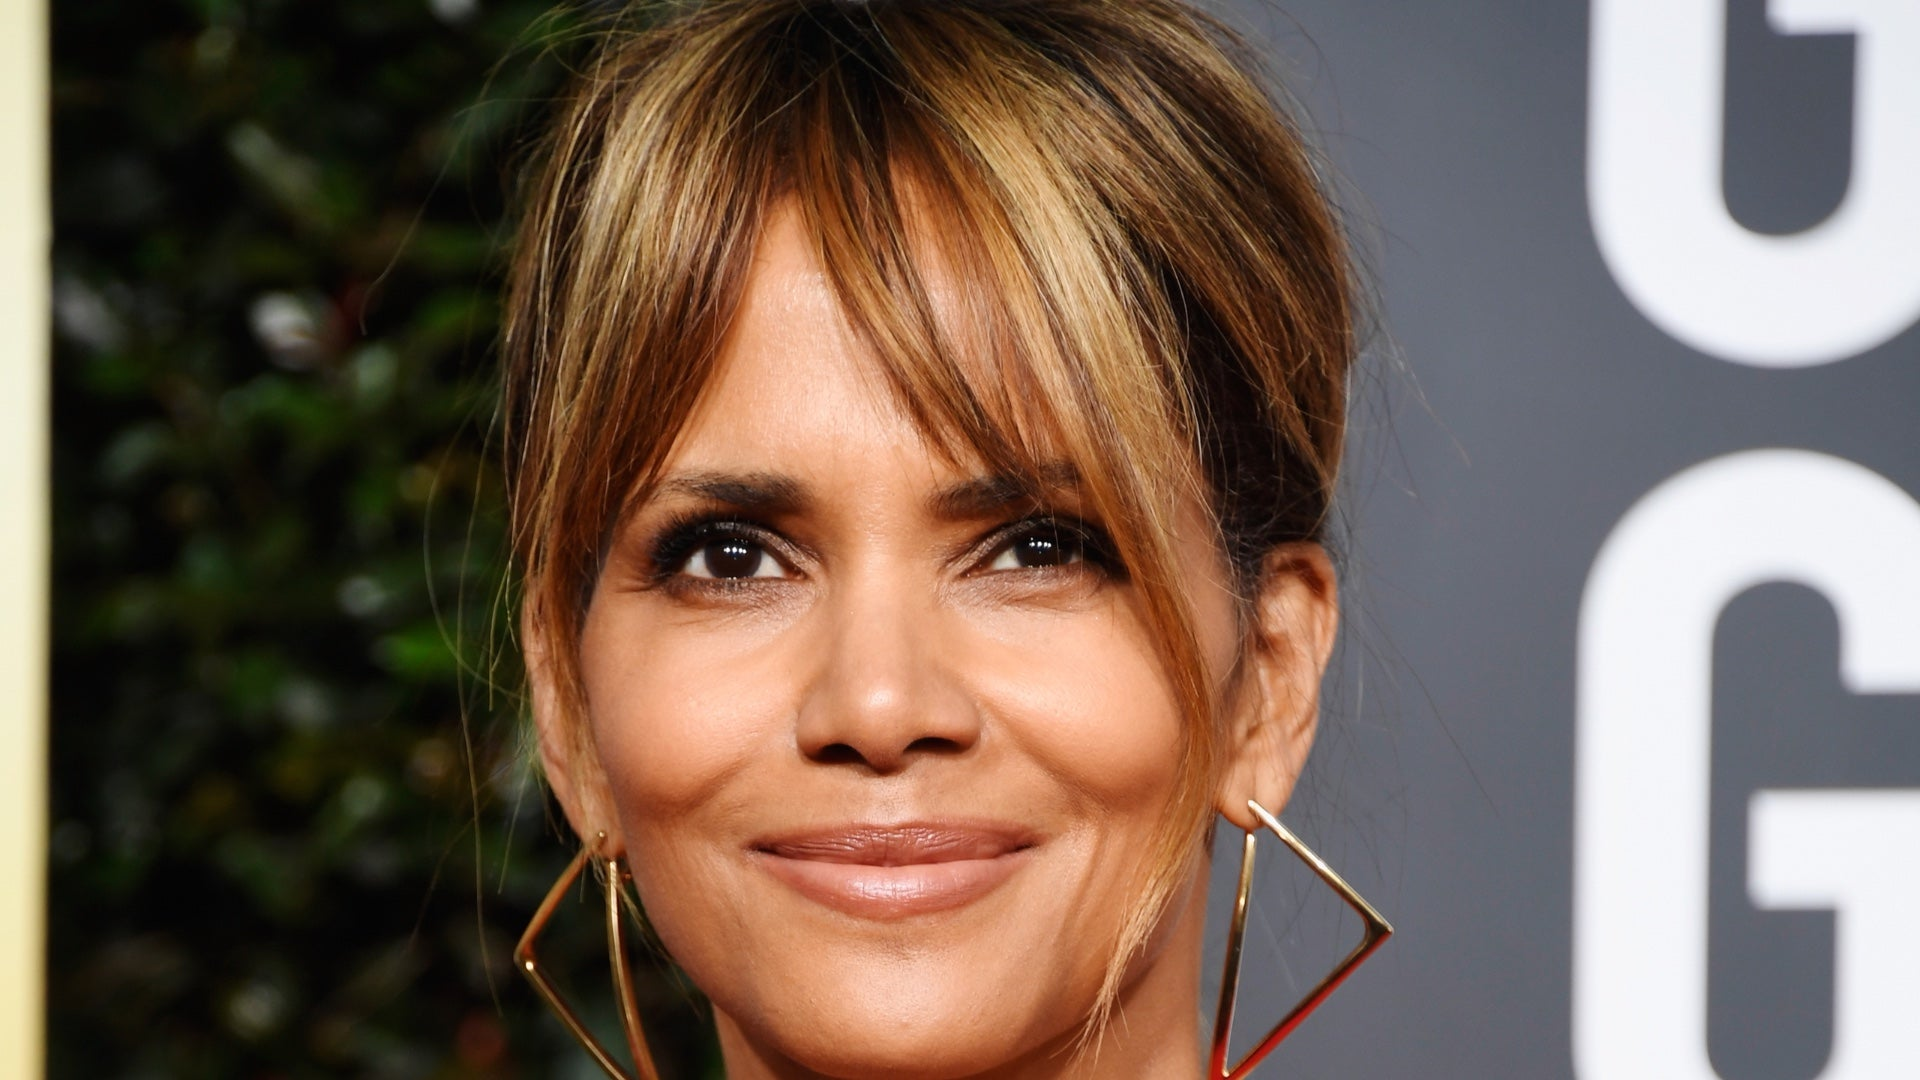 Halle Berry Has Great Response To Hater Saying She 'Can't Keep A Man!'